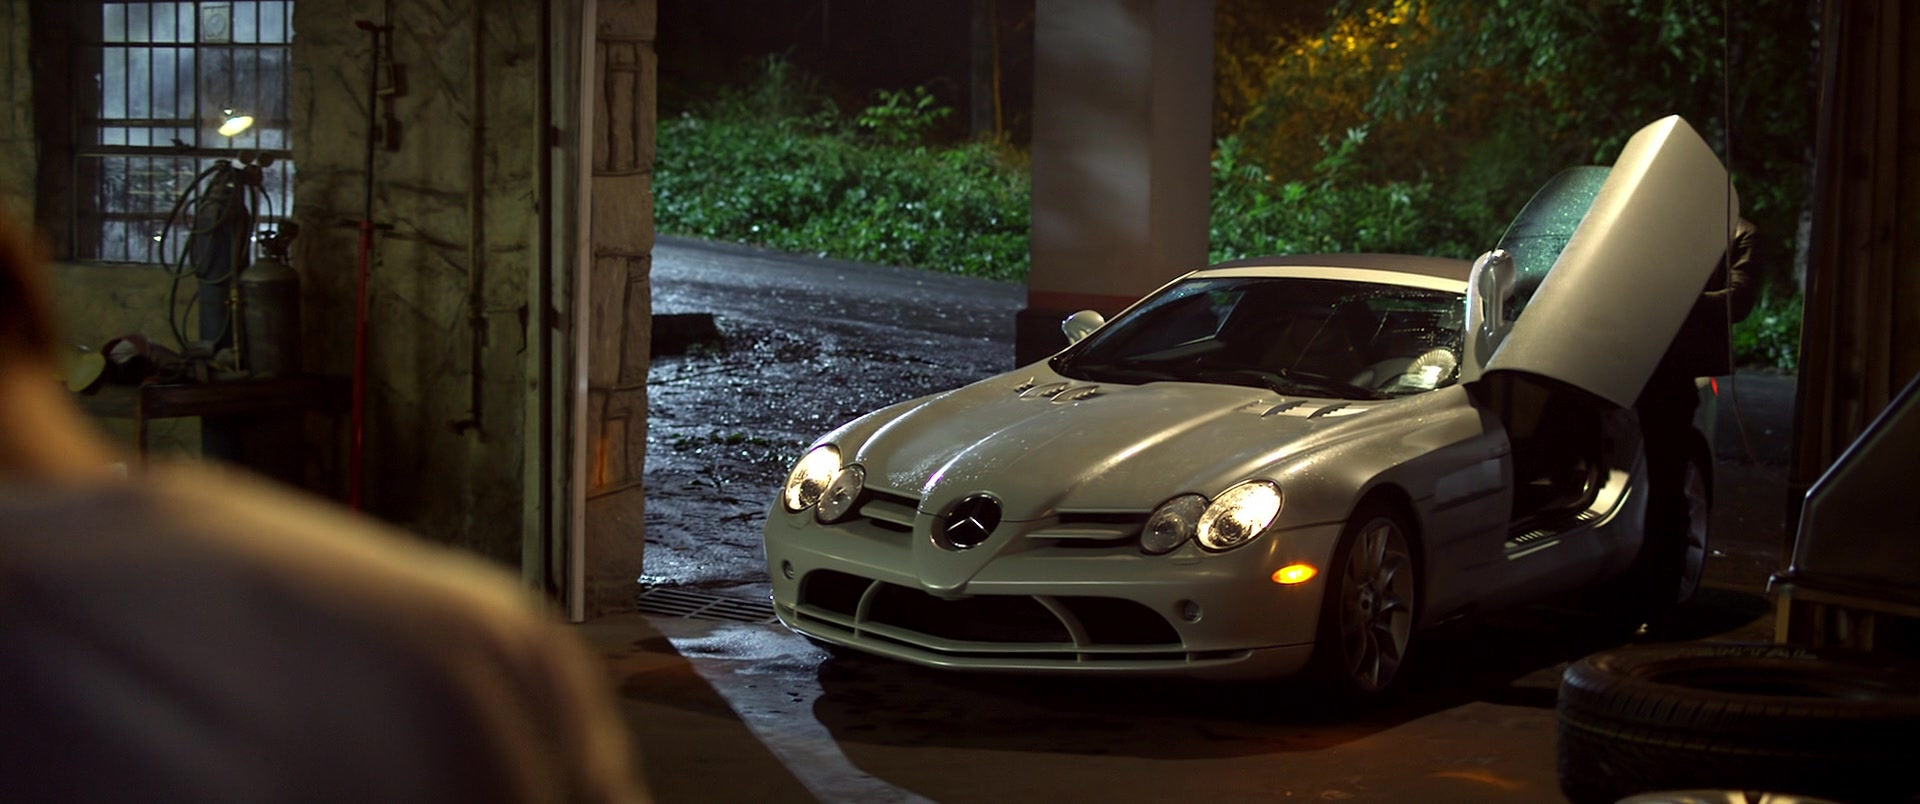 Mercedes Benz Slr Mclaren Roadster R199 Car In Need For